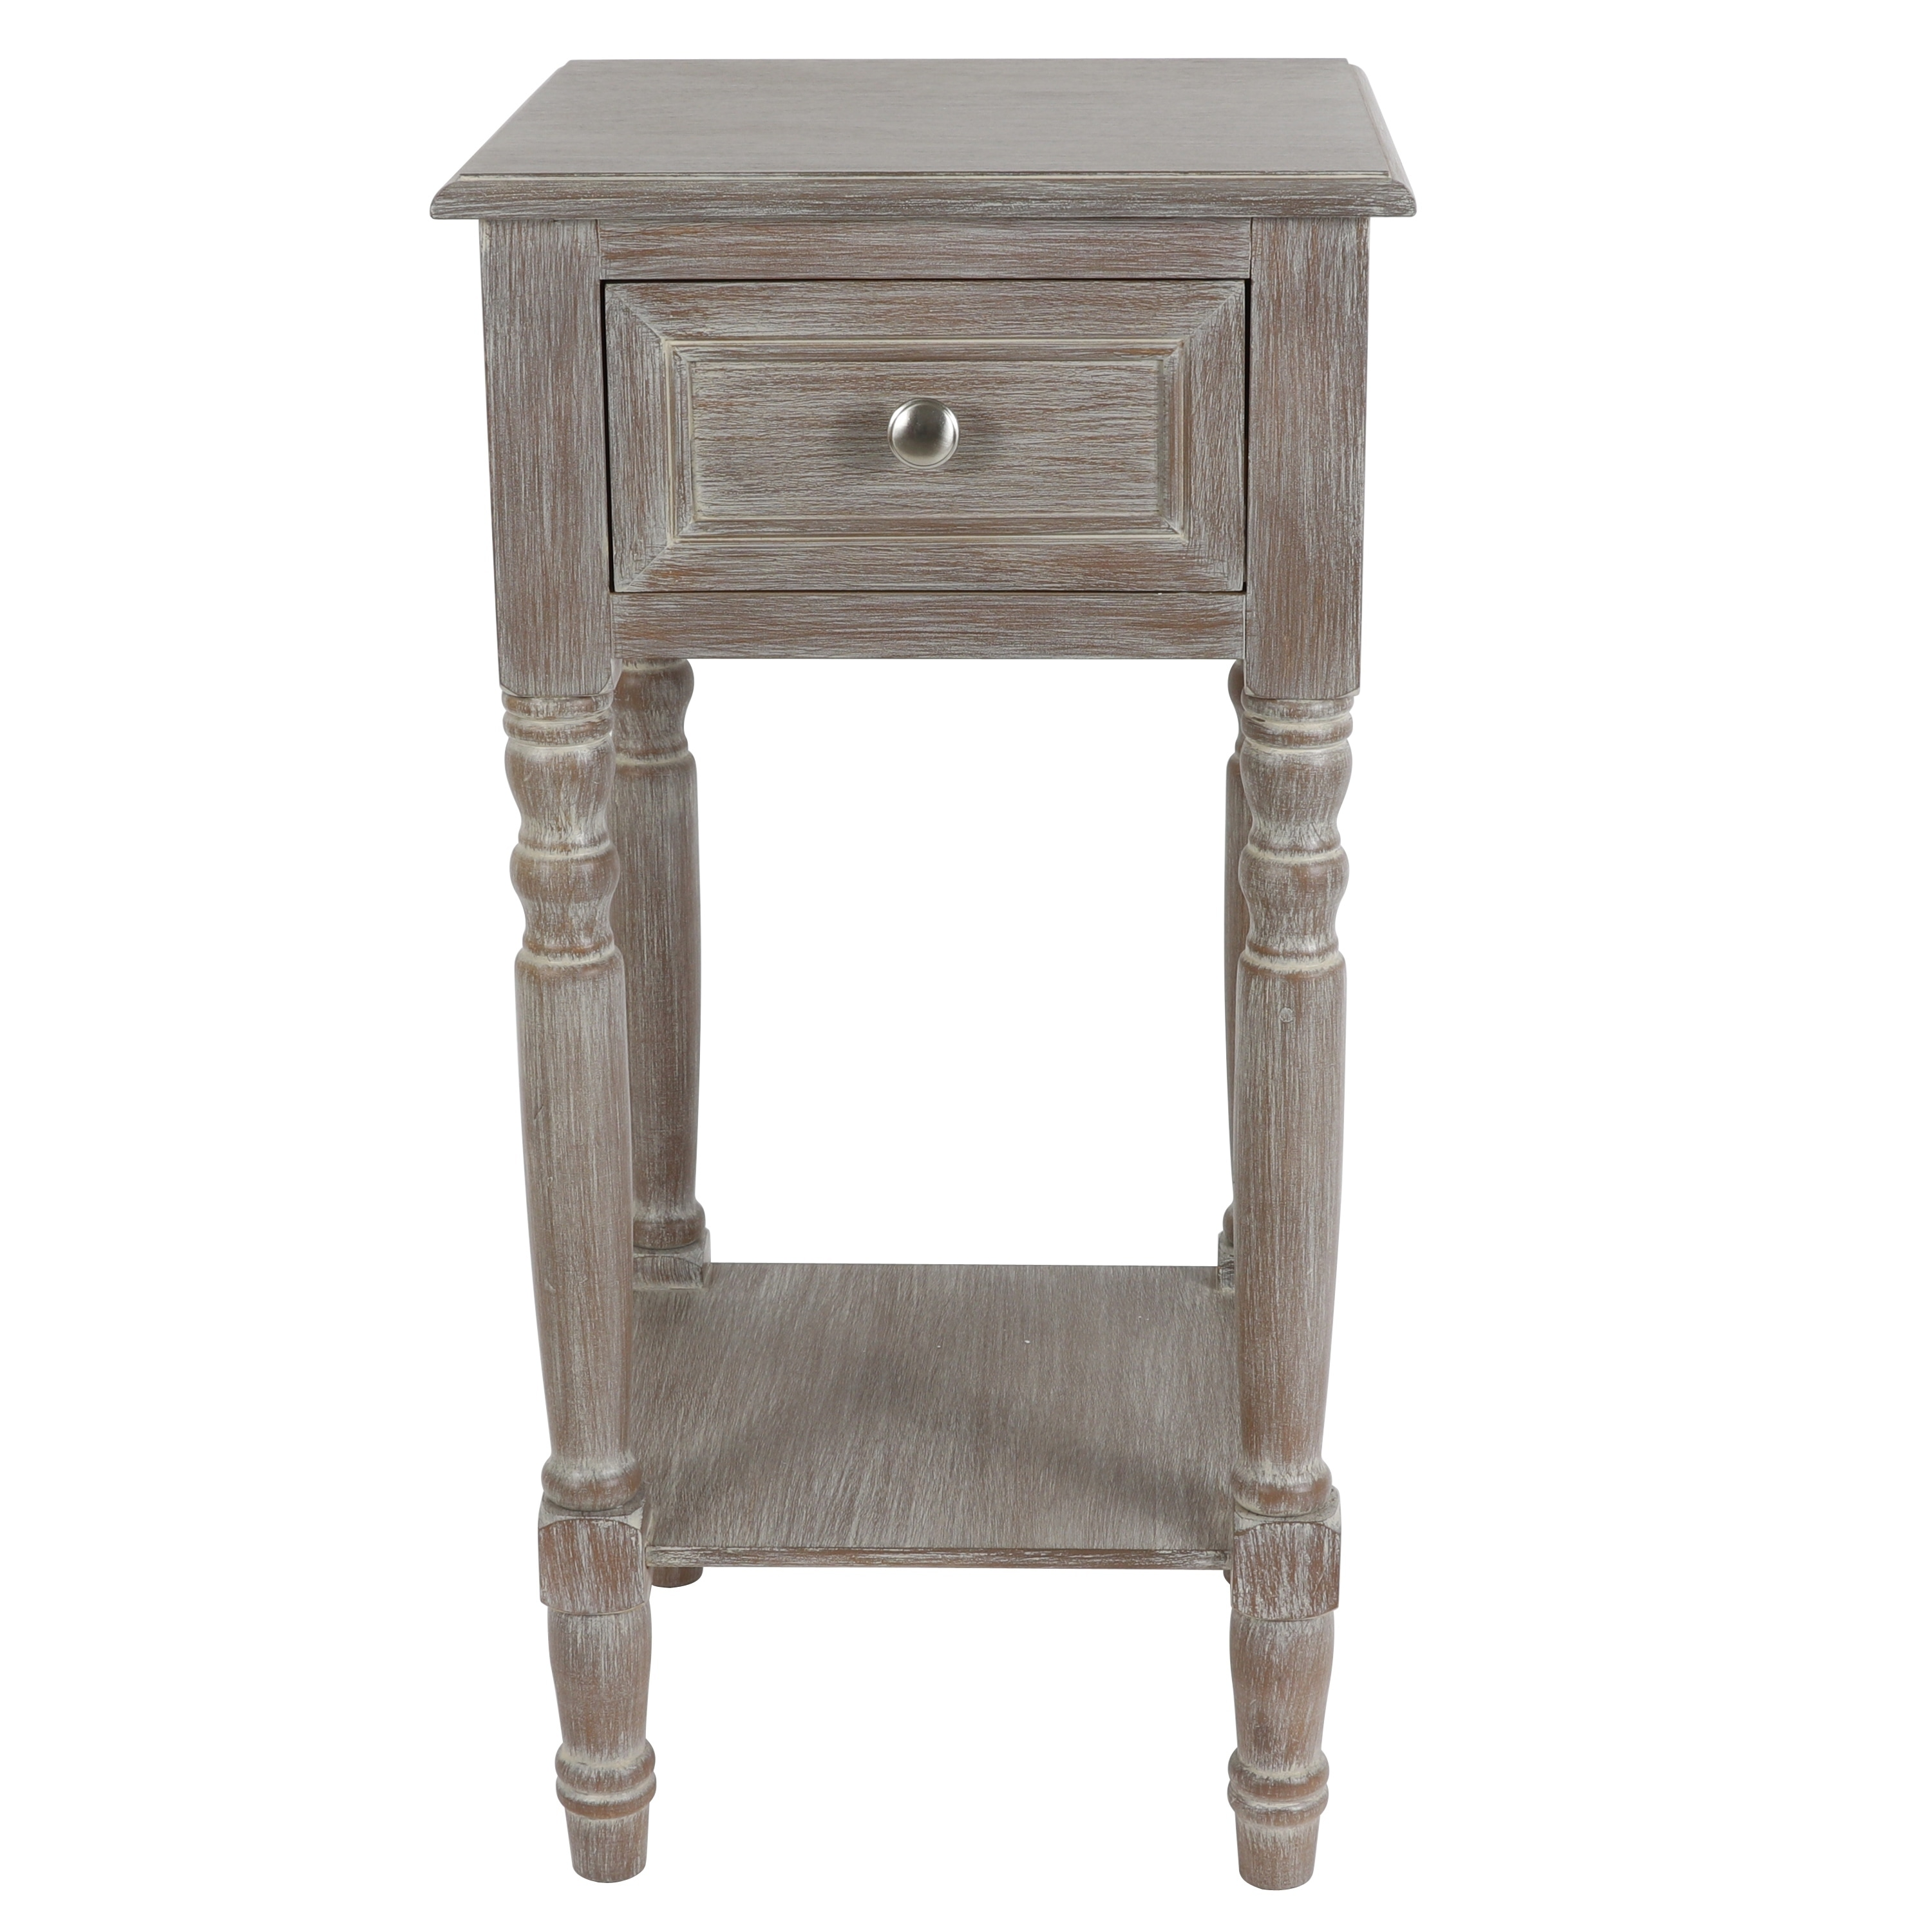 simplify one drawer accent table free shipping today round metal garden iron end entryway bench modern tables coffee sets with storage real wood elastic covers floor threshold